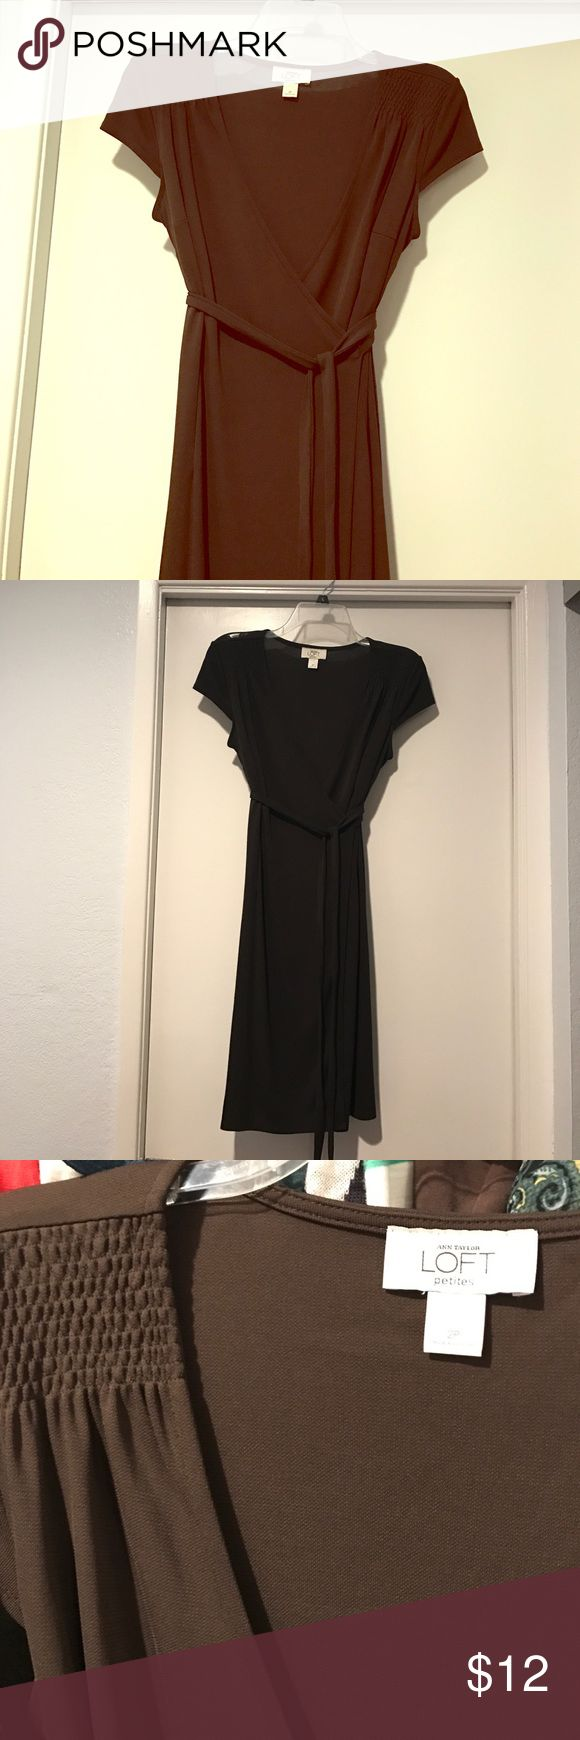 Loft brown petite wrap dress Loft petite wrap dress in a beautiful chocolate brown color. Detailing at shoulders. Attached belt. 65% rayon 35% polyester. Good condition. Light signs of wear. No smells. Very subtle deodorant mark at armpits. Like most Loft clothes this runs big. I'm usually a 4/6 and the fabric is stretchy with a good amount of give. LOFT Dresses Mini